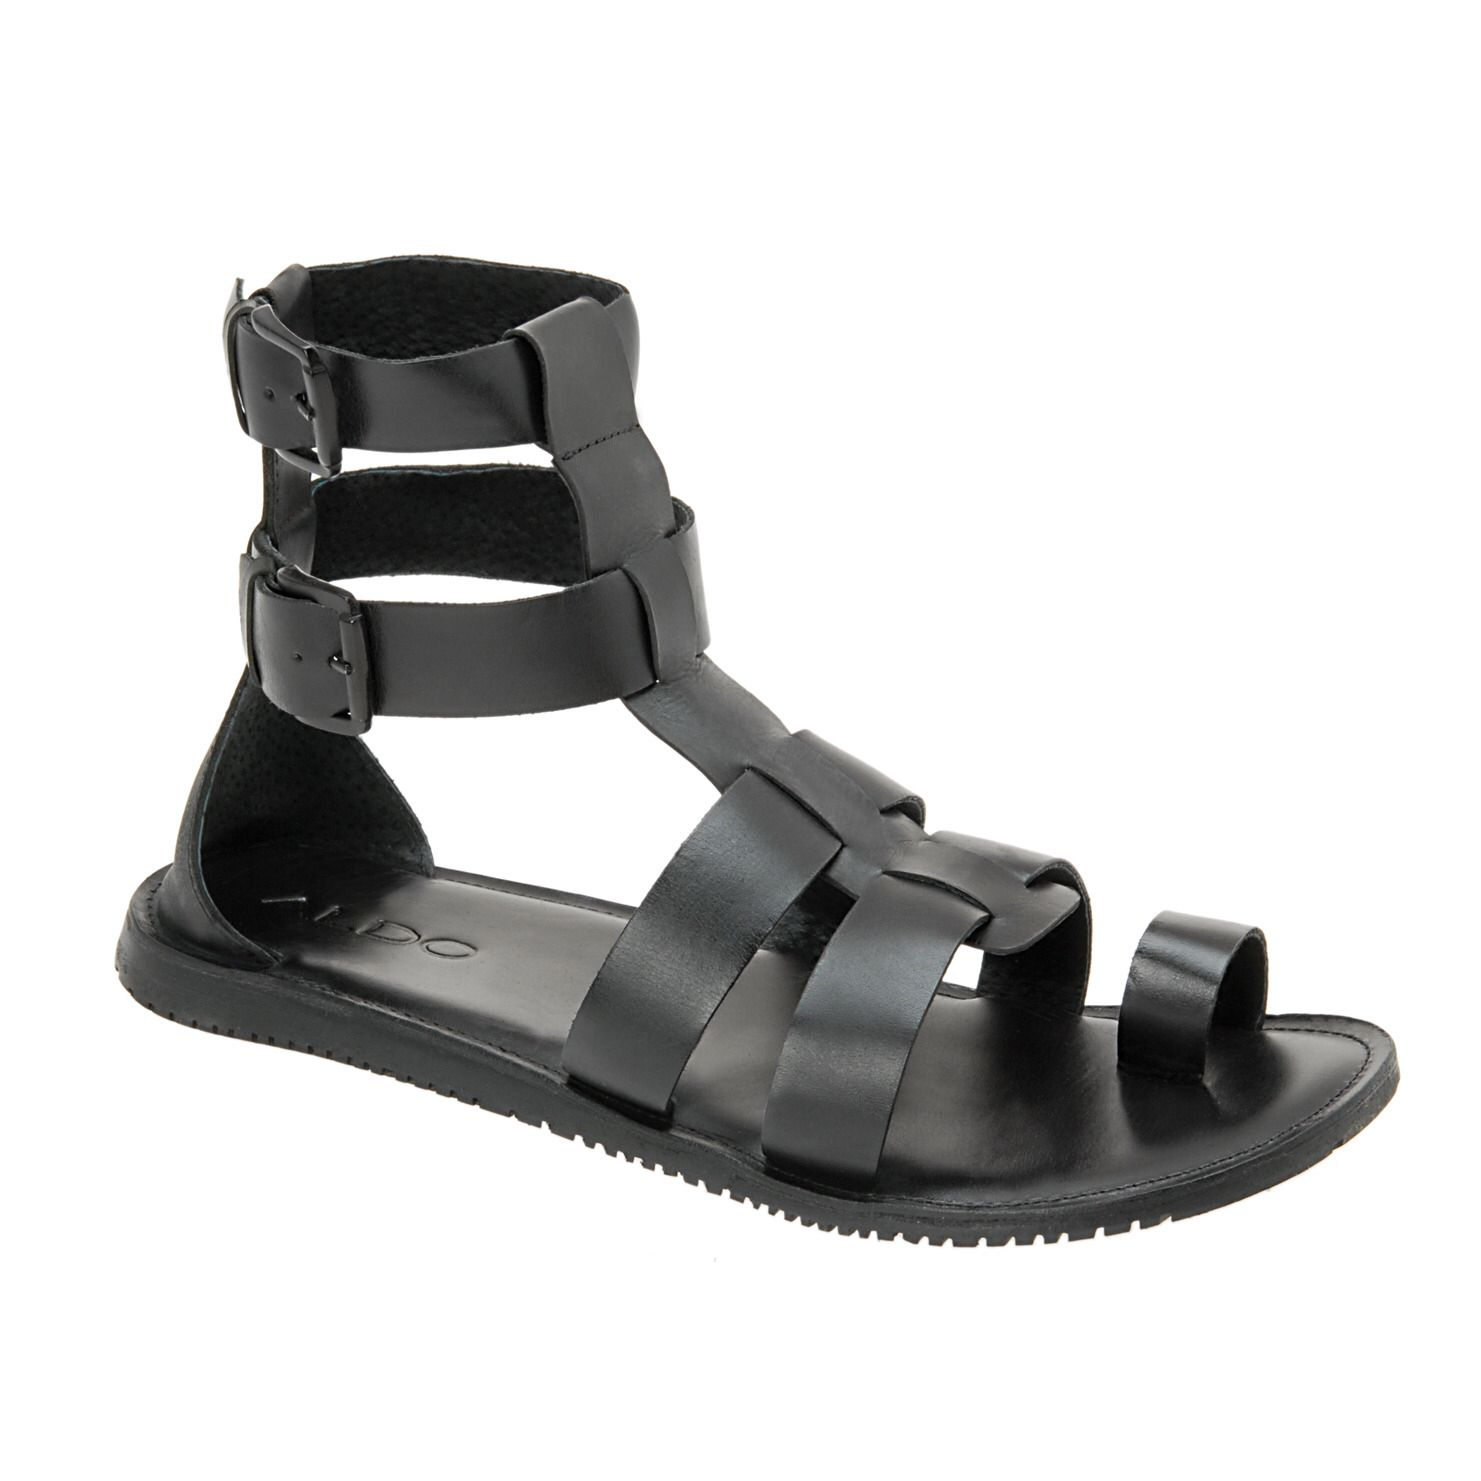 334f33908 I hope they are selling this here in the Philippines. I am deeply in love  with this sandal!